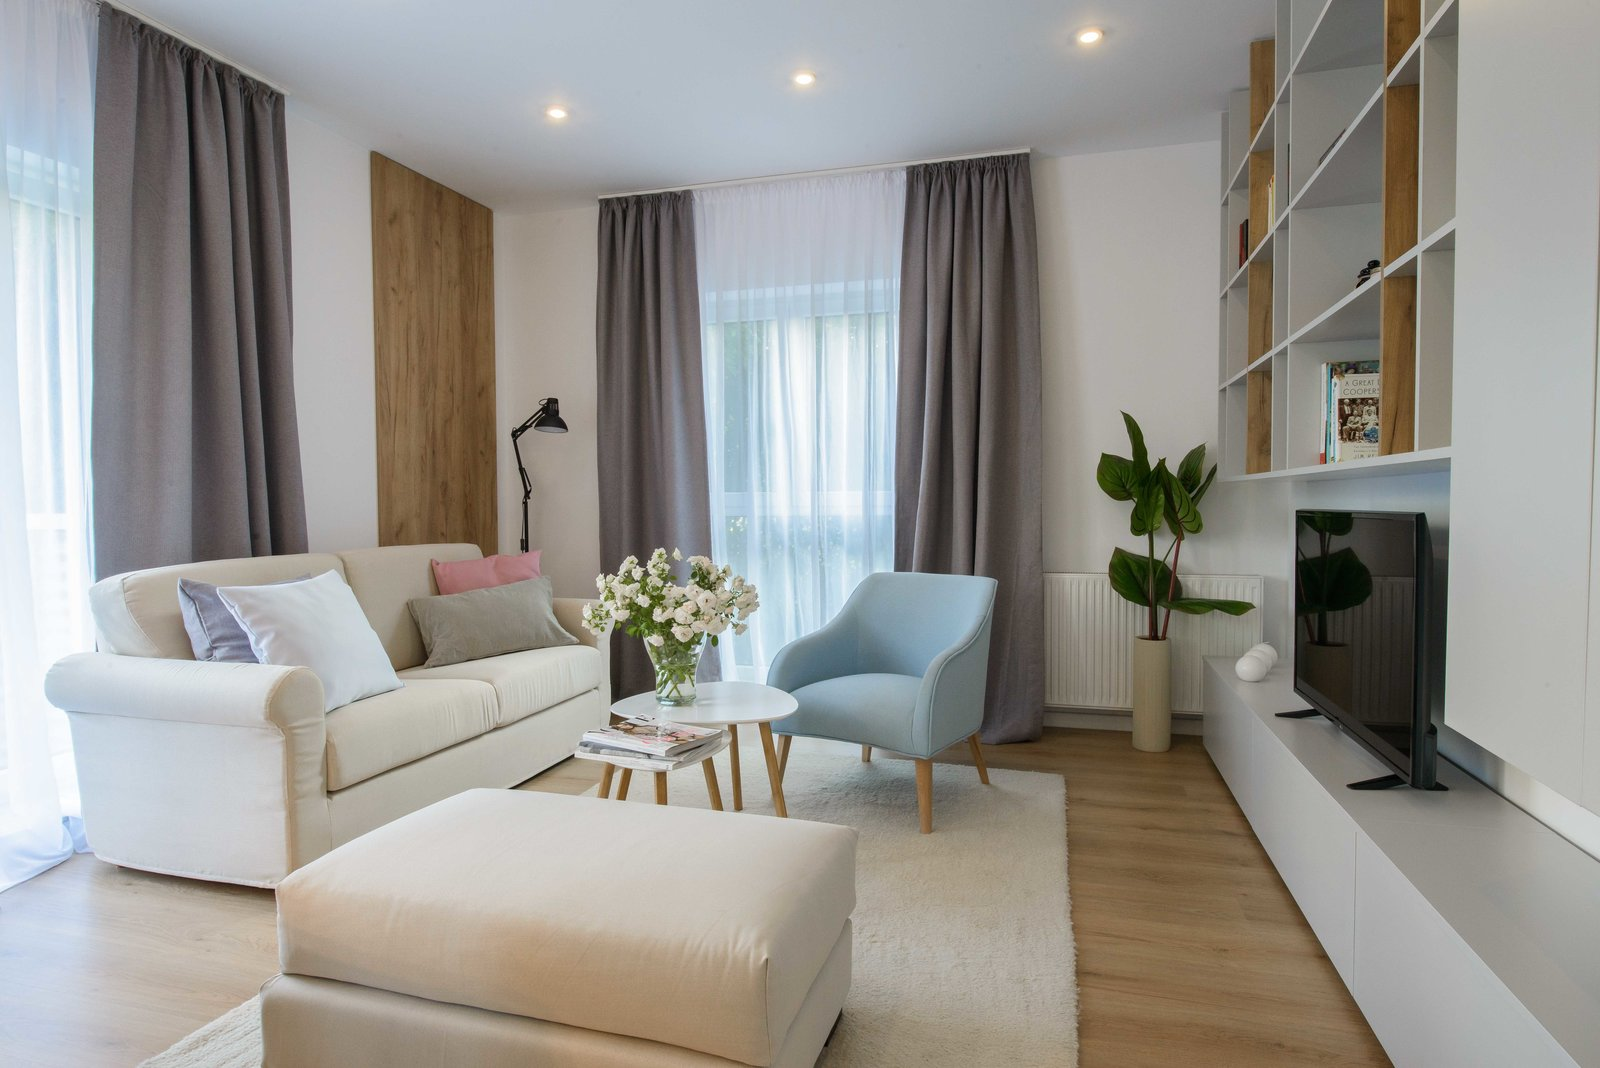 Working on a budget is no easy thing, but with the clever eye of an interior designer, every space can become a home. Having in mind that great design doesn't stand out, it only makes your living environment more pleasant, the designer has chosen soft lines, neutral colors and some small pastel accents.  Neutrals and soft pastels